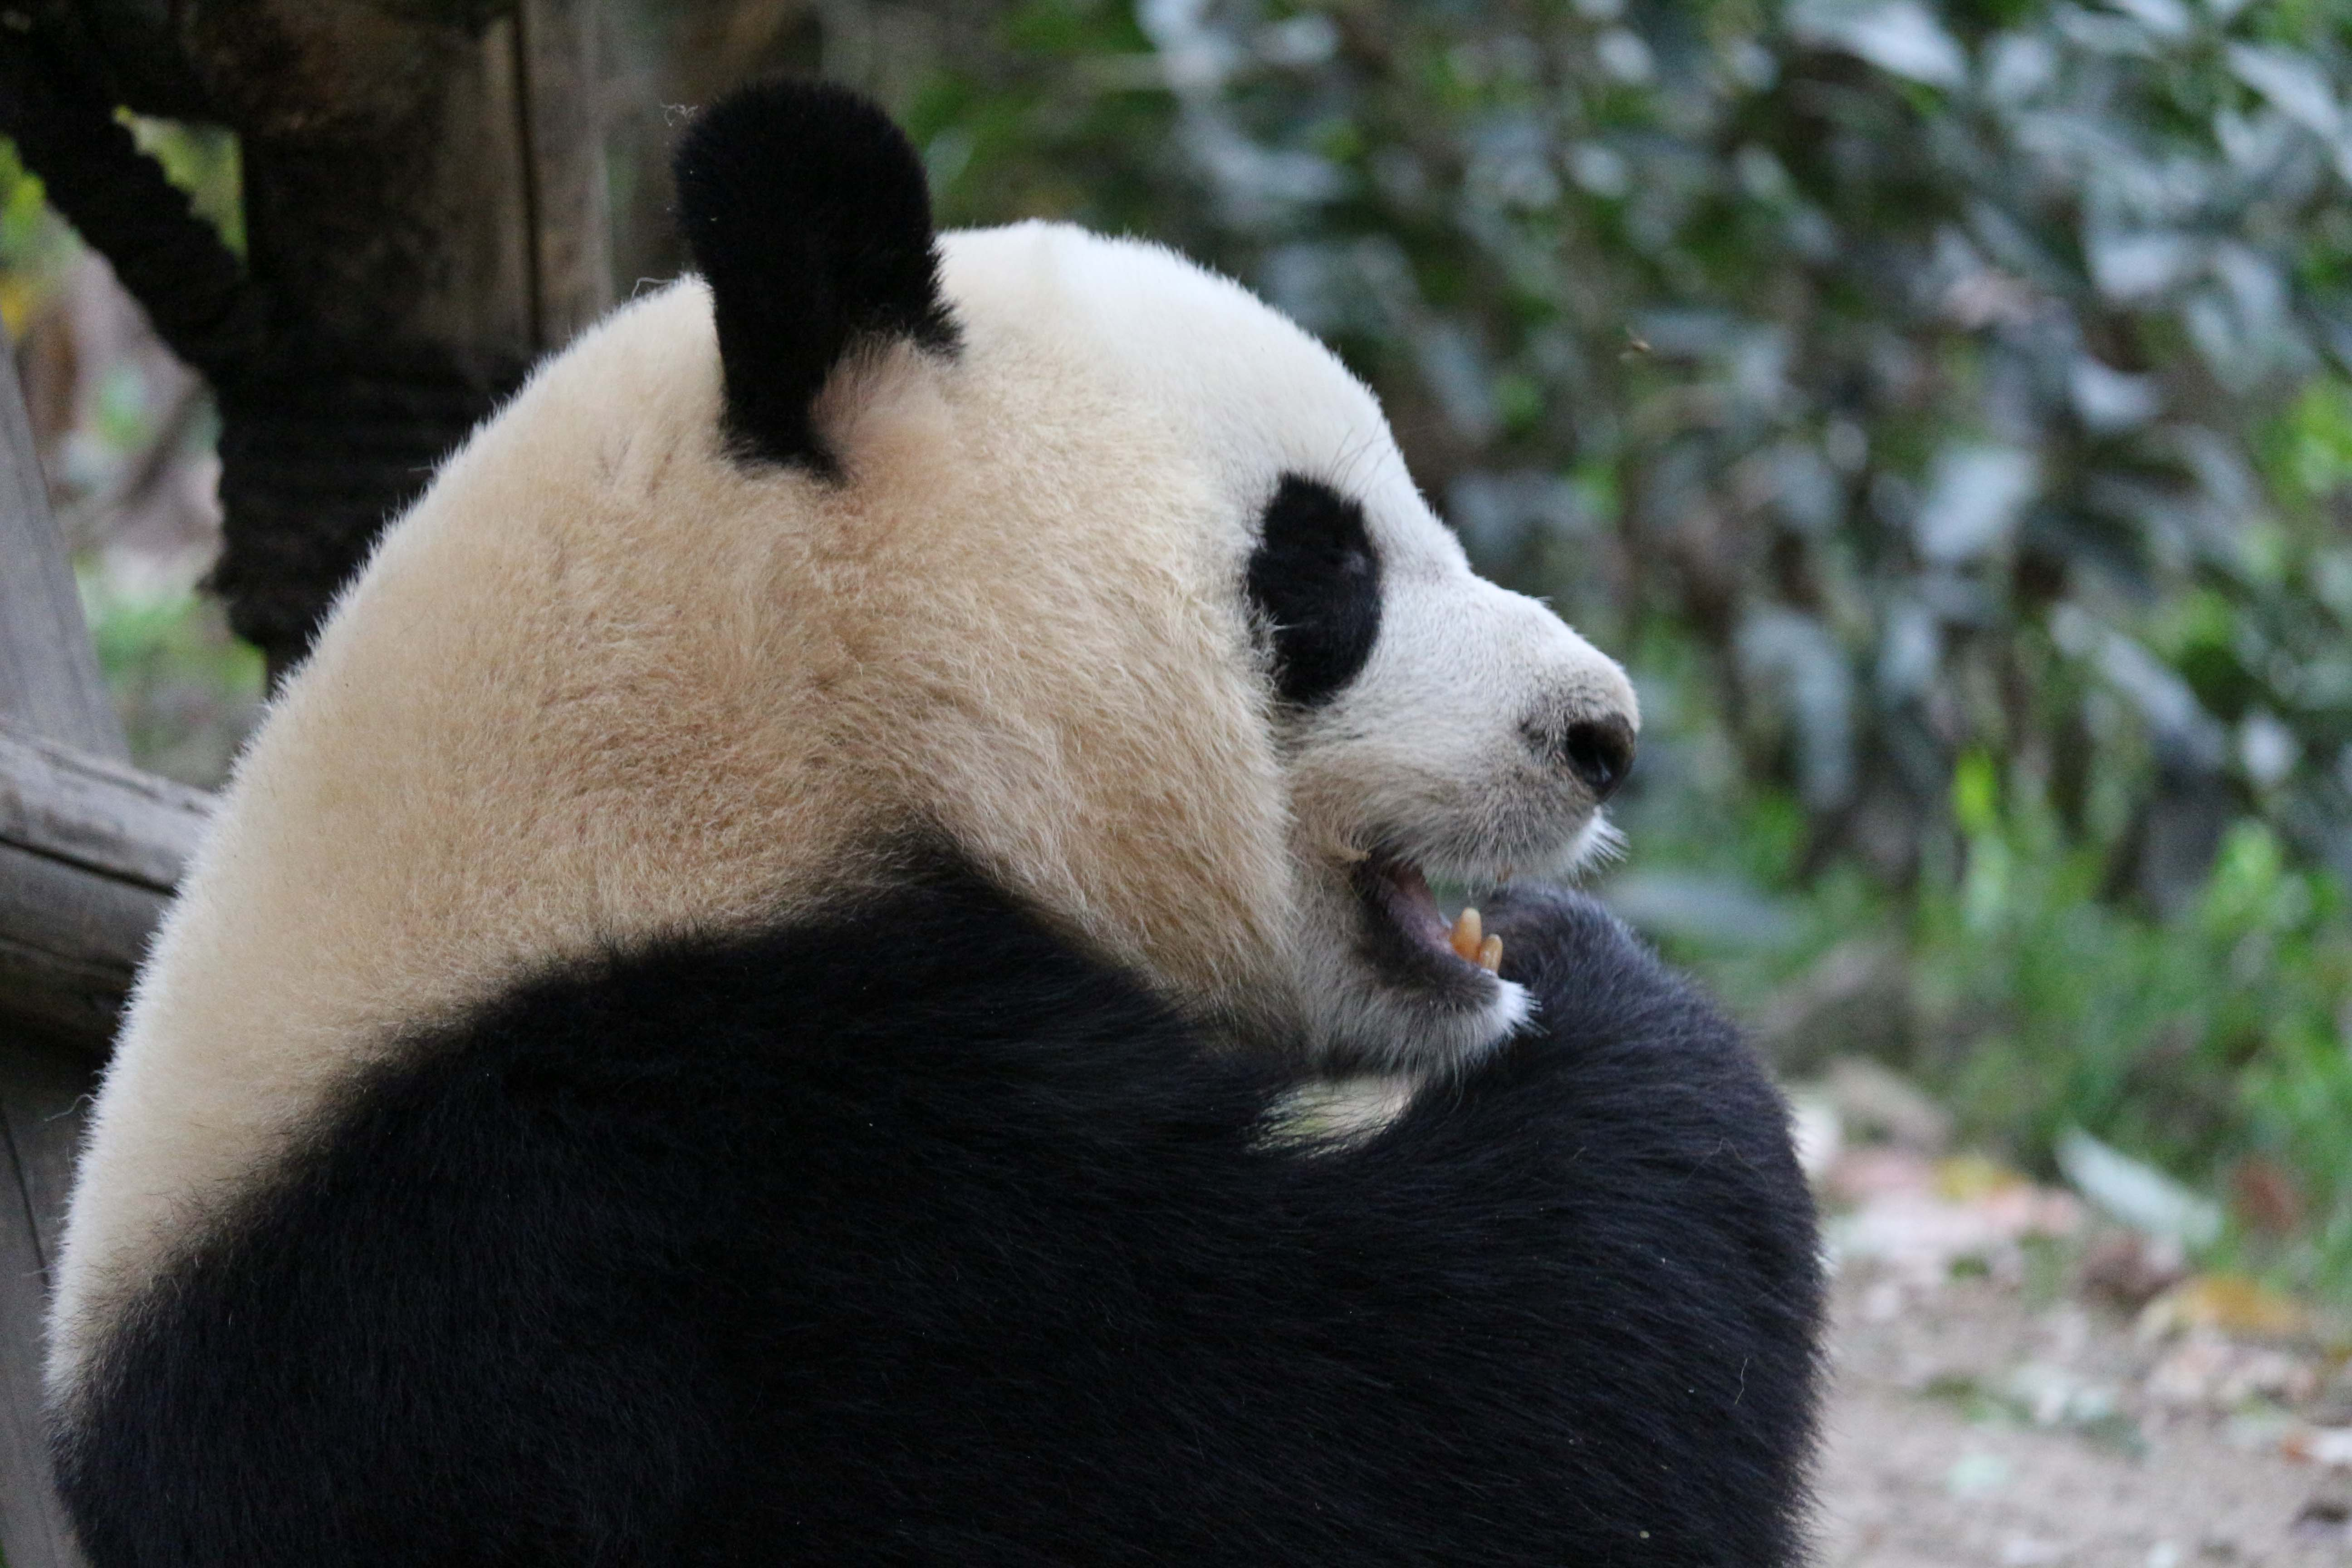 laughing panda in Chengdu